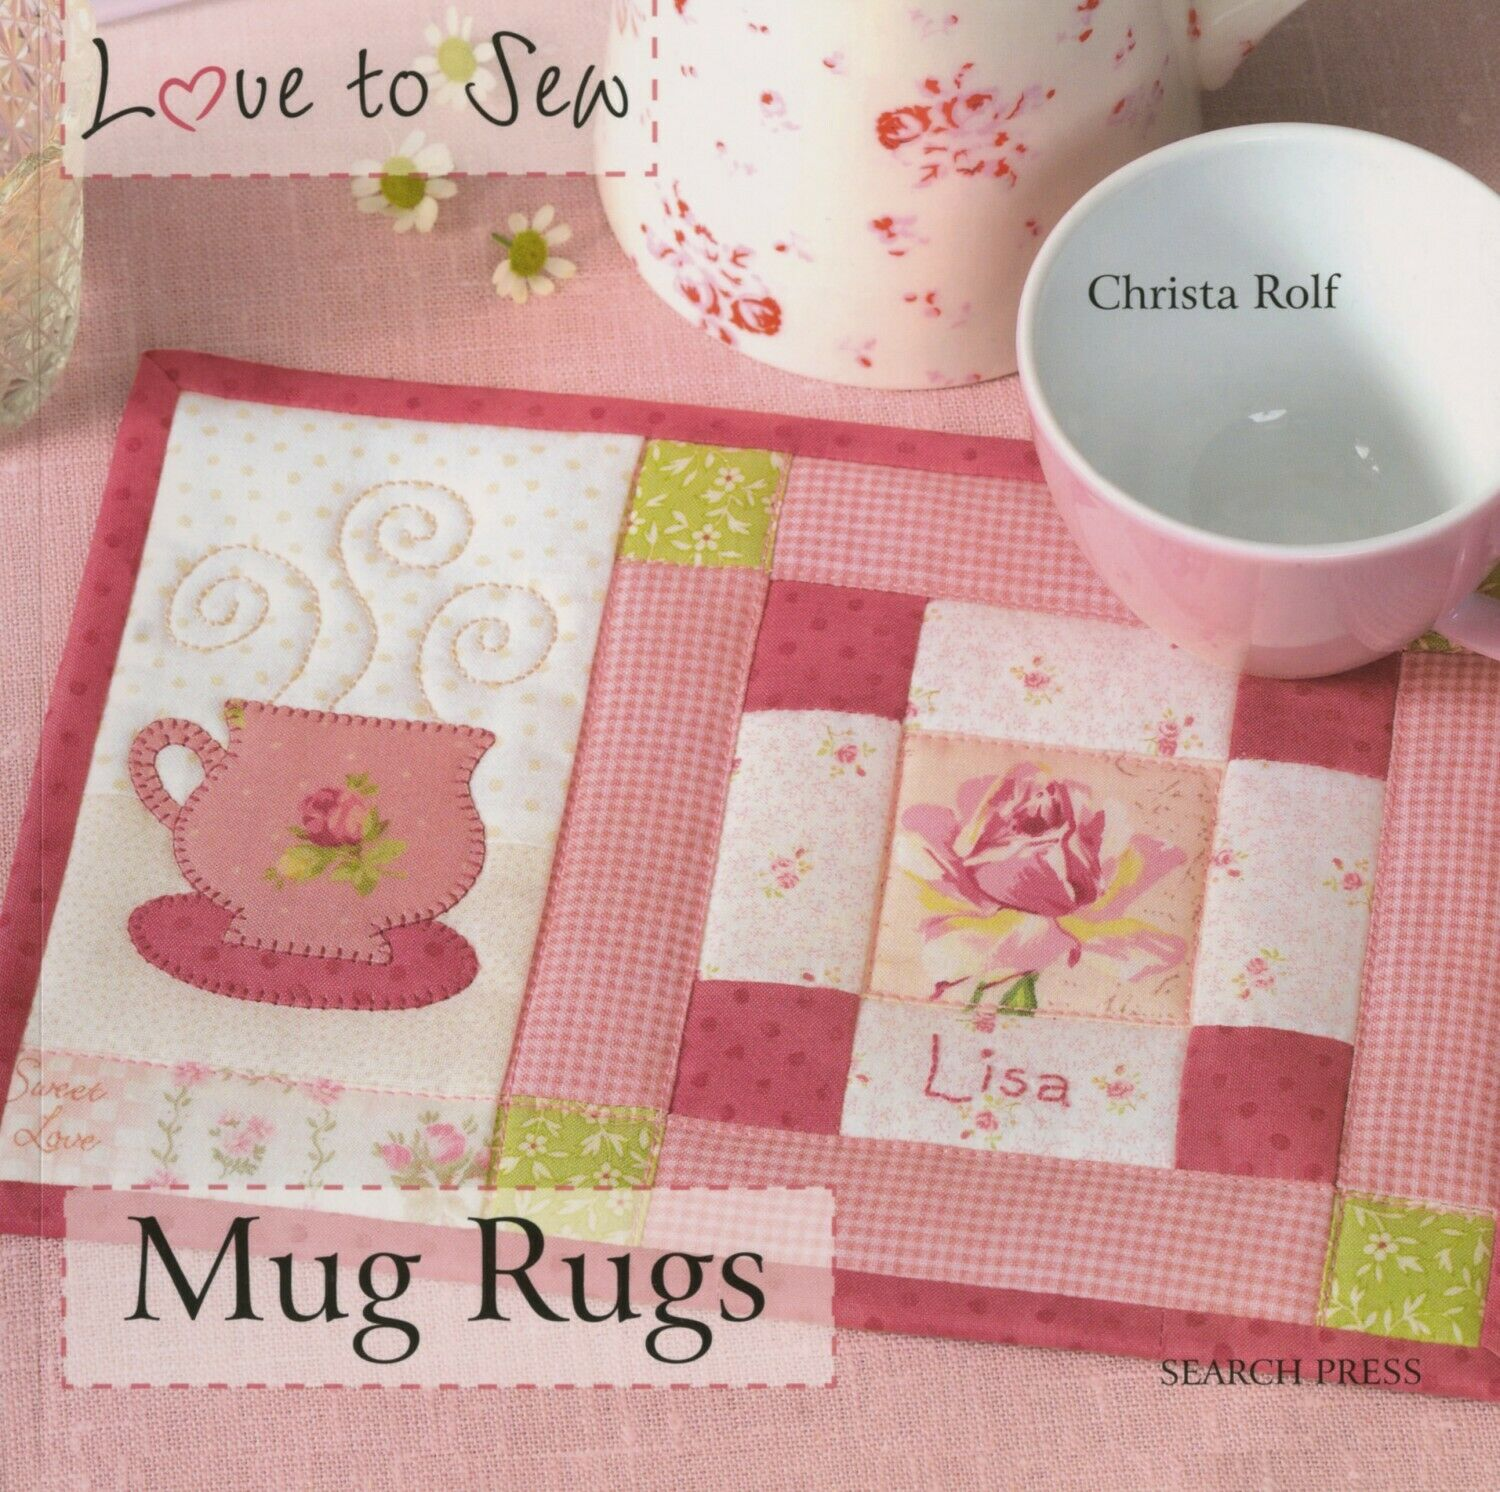 Love to Sew Mug Rugs Softcover Book by Christa Rolf